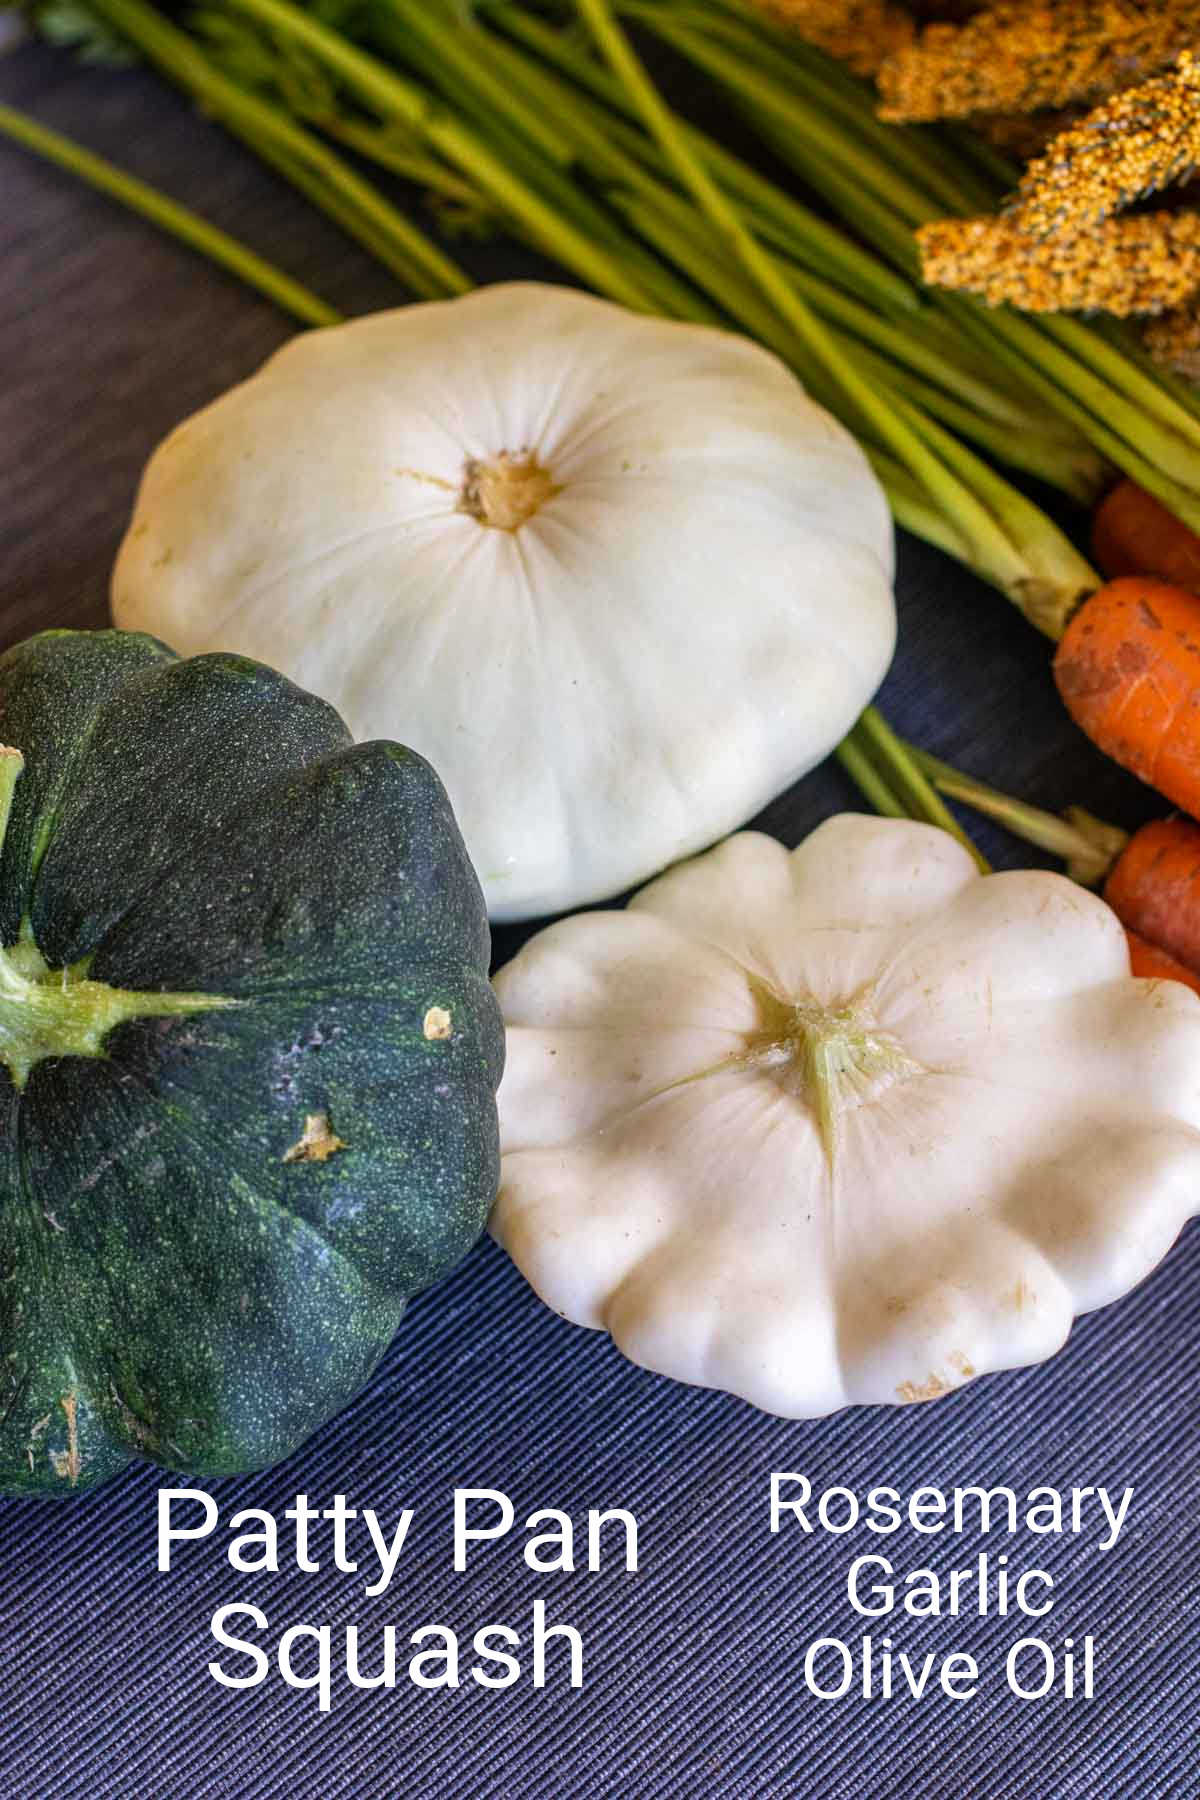 ingredient photo showing the different types of green and white patty pan squash with labels.